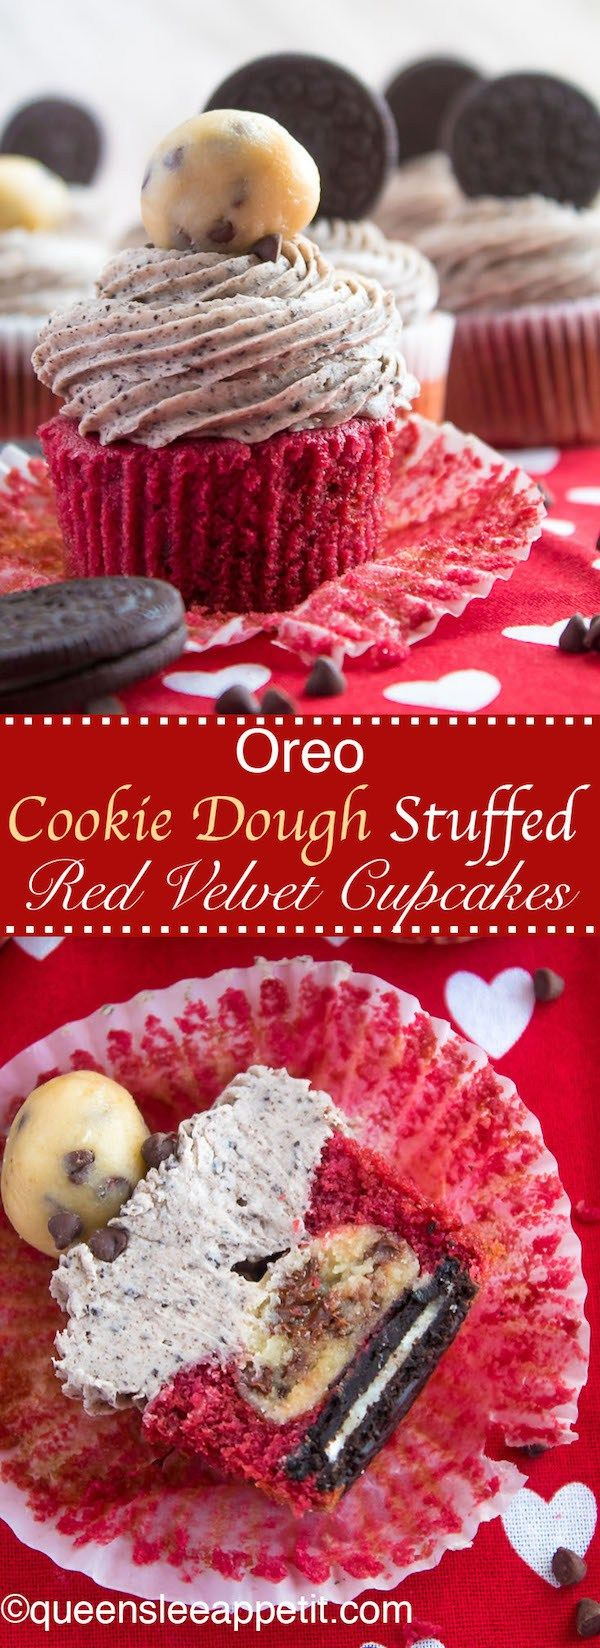 Oreo Cookie Dough Stuffed Red Velvet Cupcakes  | Posted By: DebbieNet.com